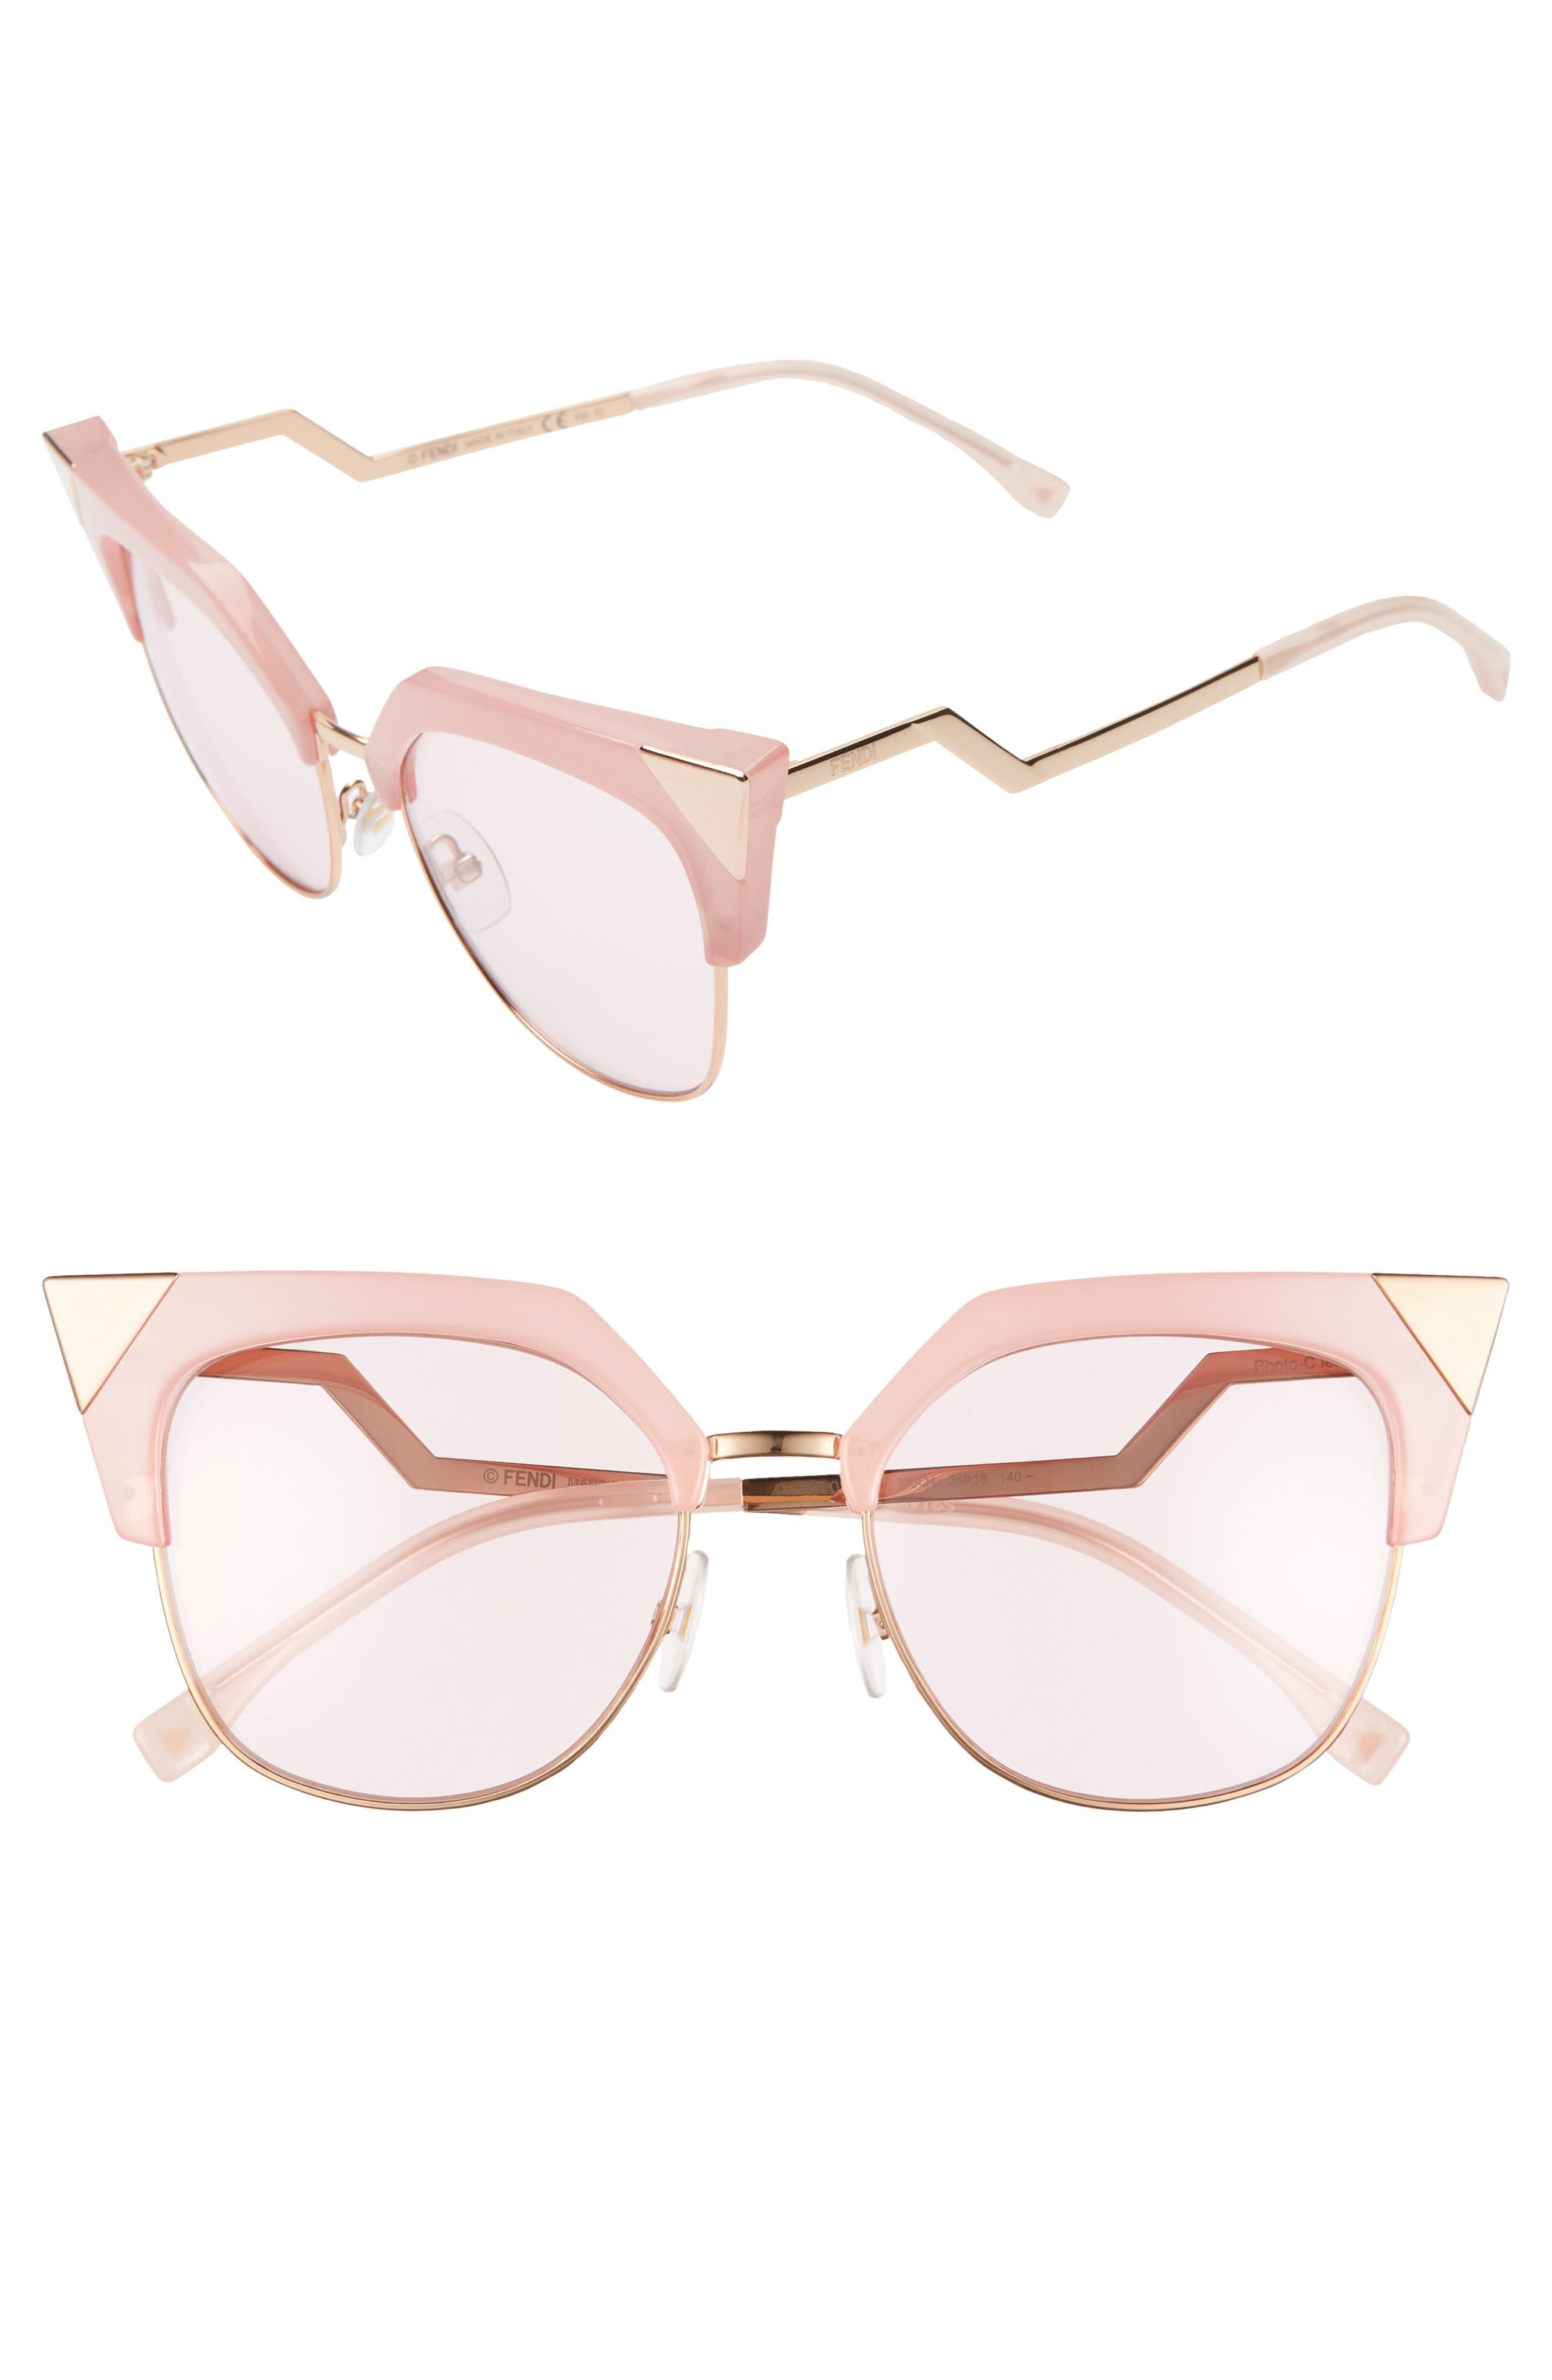 f7890d9b2053 Fendi Sunglasses for Women | Nordstrom